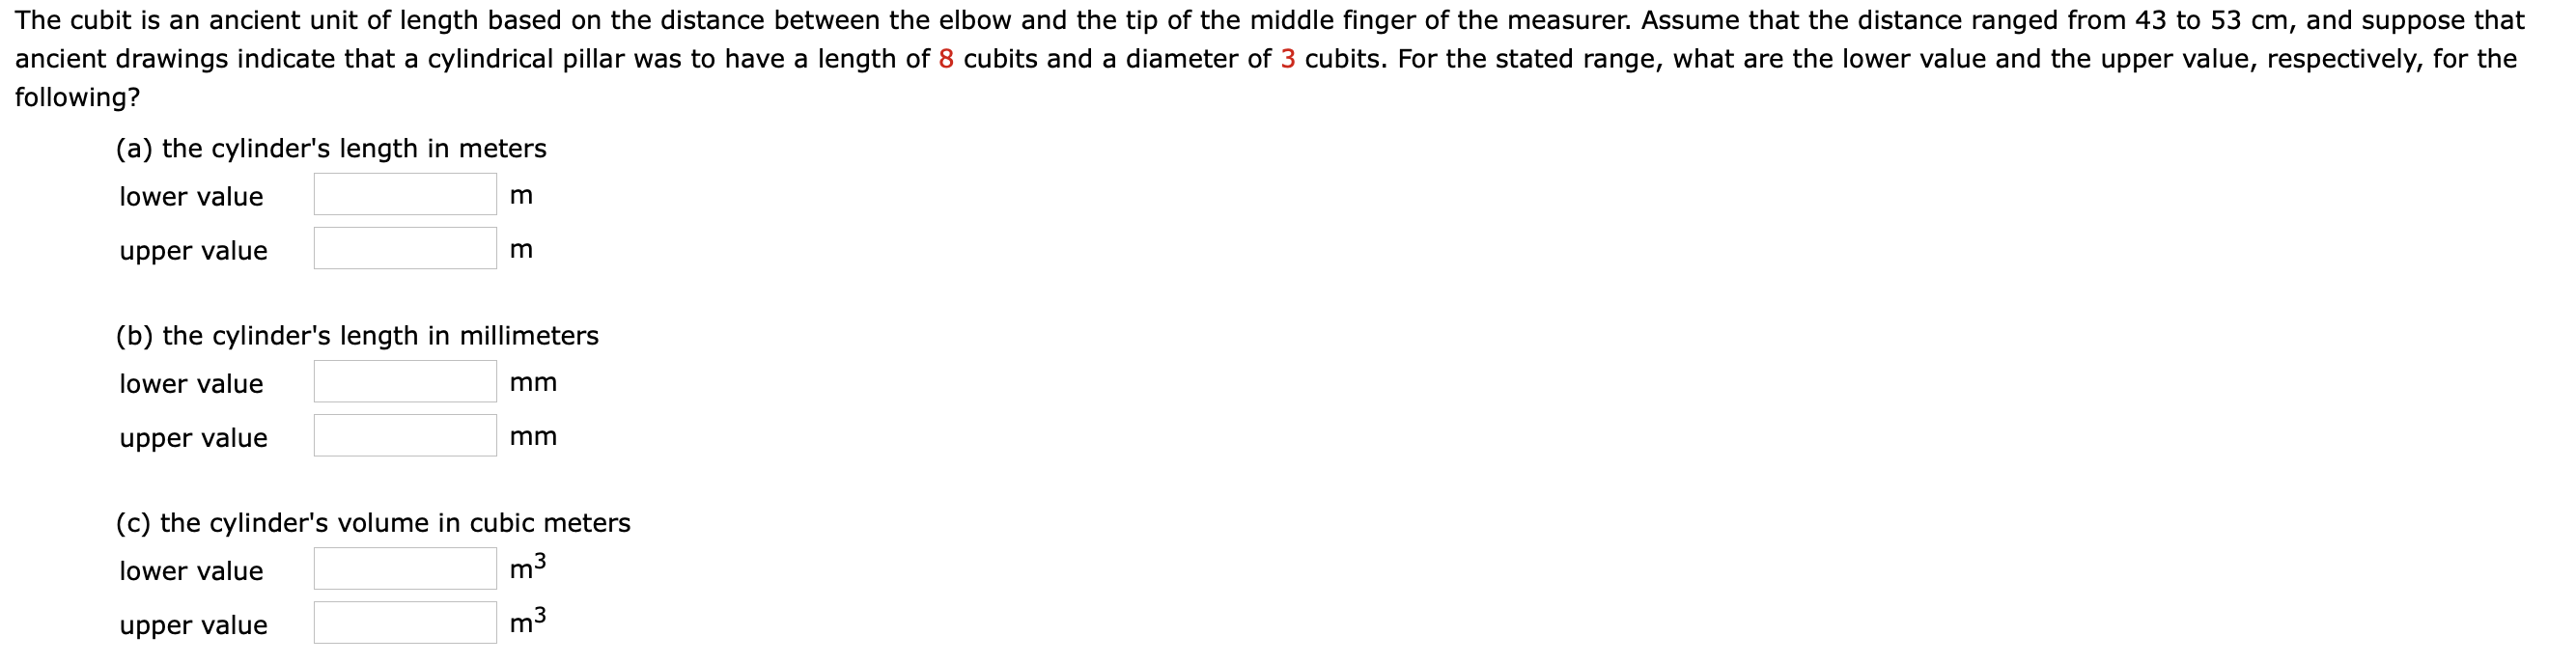 The cubit is an ancient unit of length based on the distance between the elbow and the tip of the middle finger of the measurer. Assume that the distance ranged from 43 to 53 cm, and suppose that ancient drawings indicate that a cylindrical pillar was to have a length of 8 cubits and a diameter of 3 cubits. For the stated range, what are the lower value and the upper value, respectively, for the following? (a) the cylinder's length in meters lower value upper value (b) the cylinder's length in millimeters lower value mm upper value mm (c) the cylinder's volume in cubic meters lower value m3 upper value m3